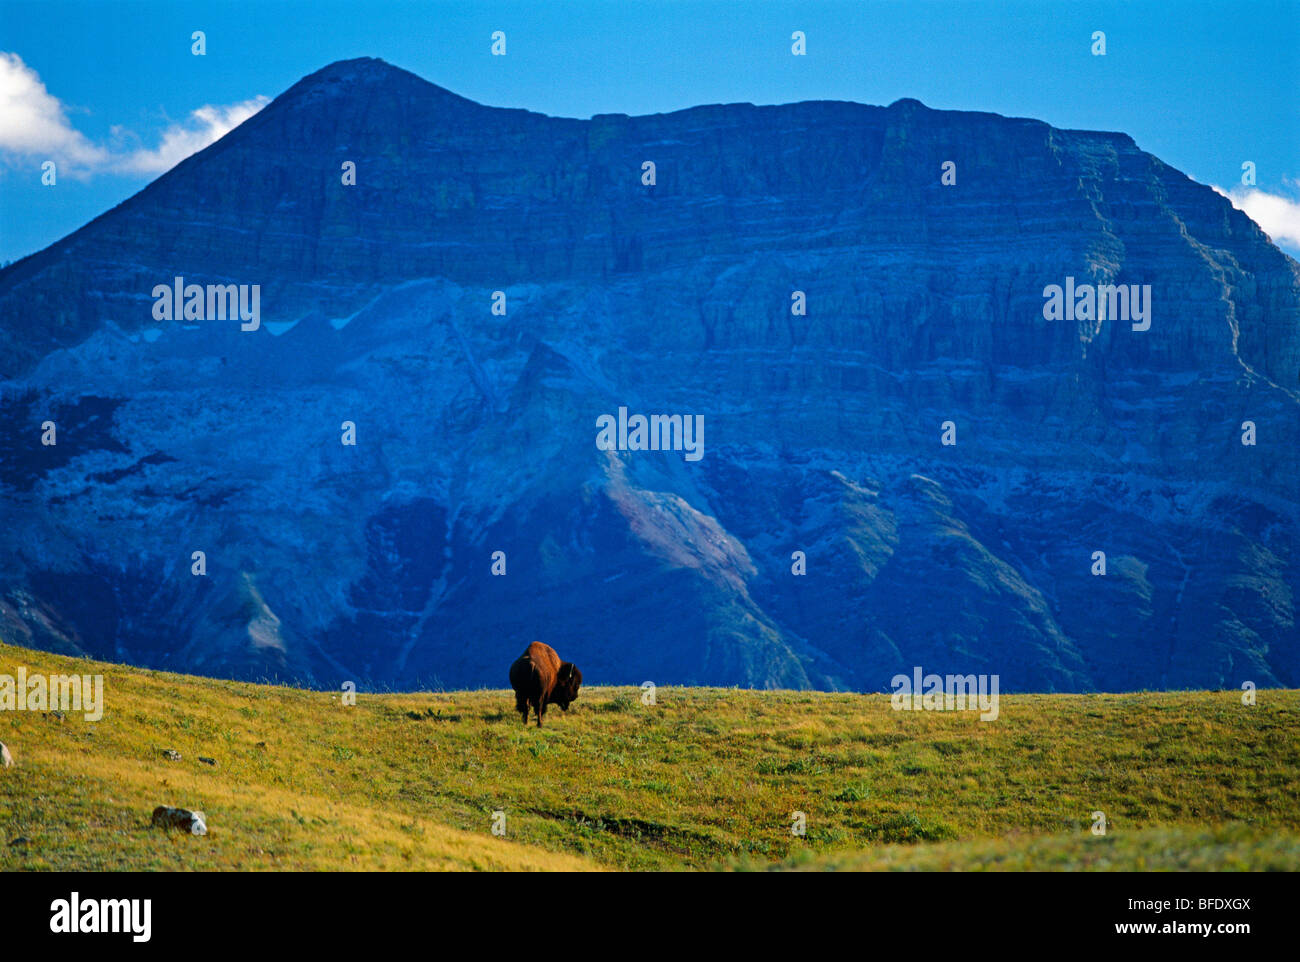 Bison (Bison bison) in field with Vimy Peak in the background, Waterton Lakes National Park, Alberta, Canada - Stock Image